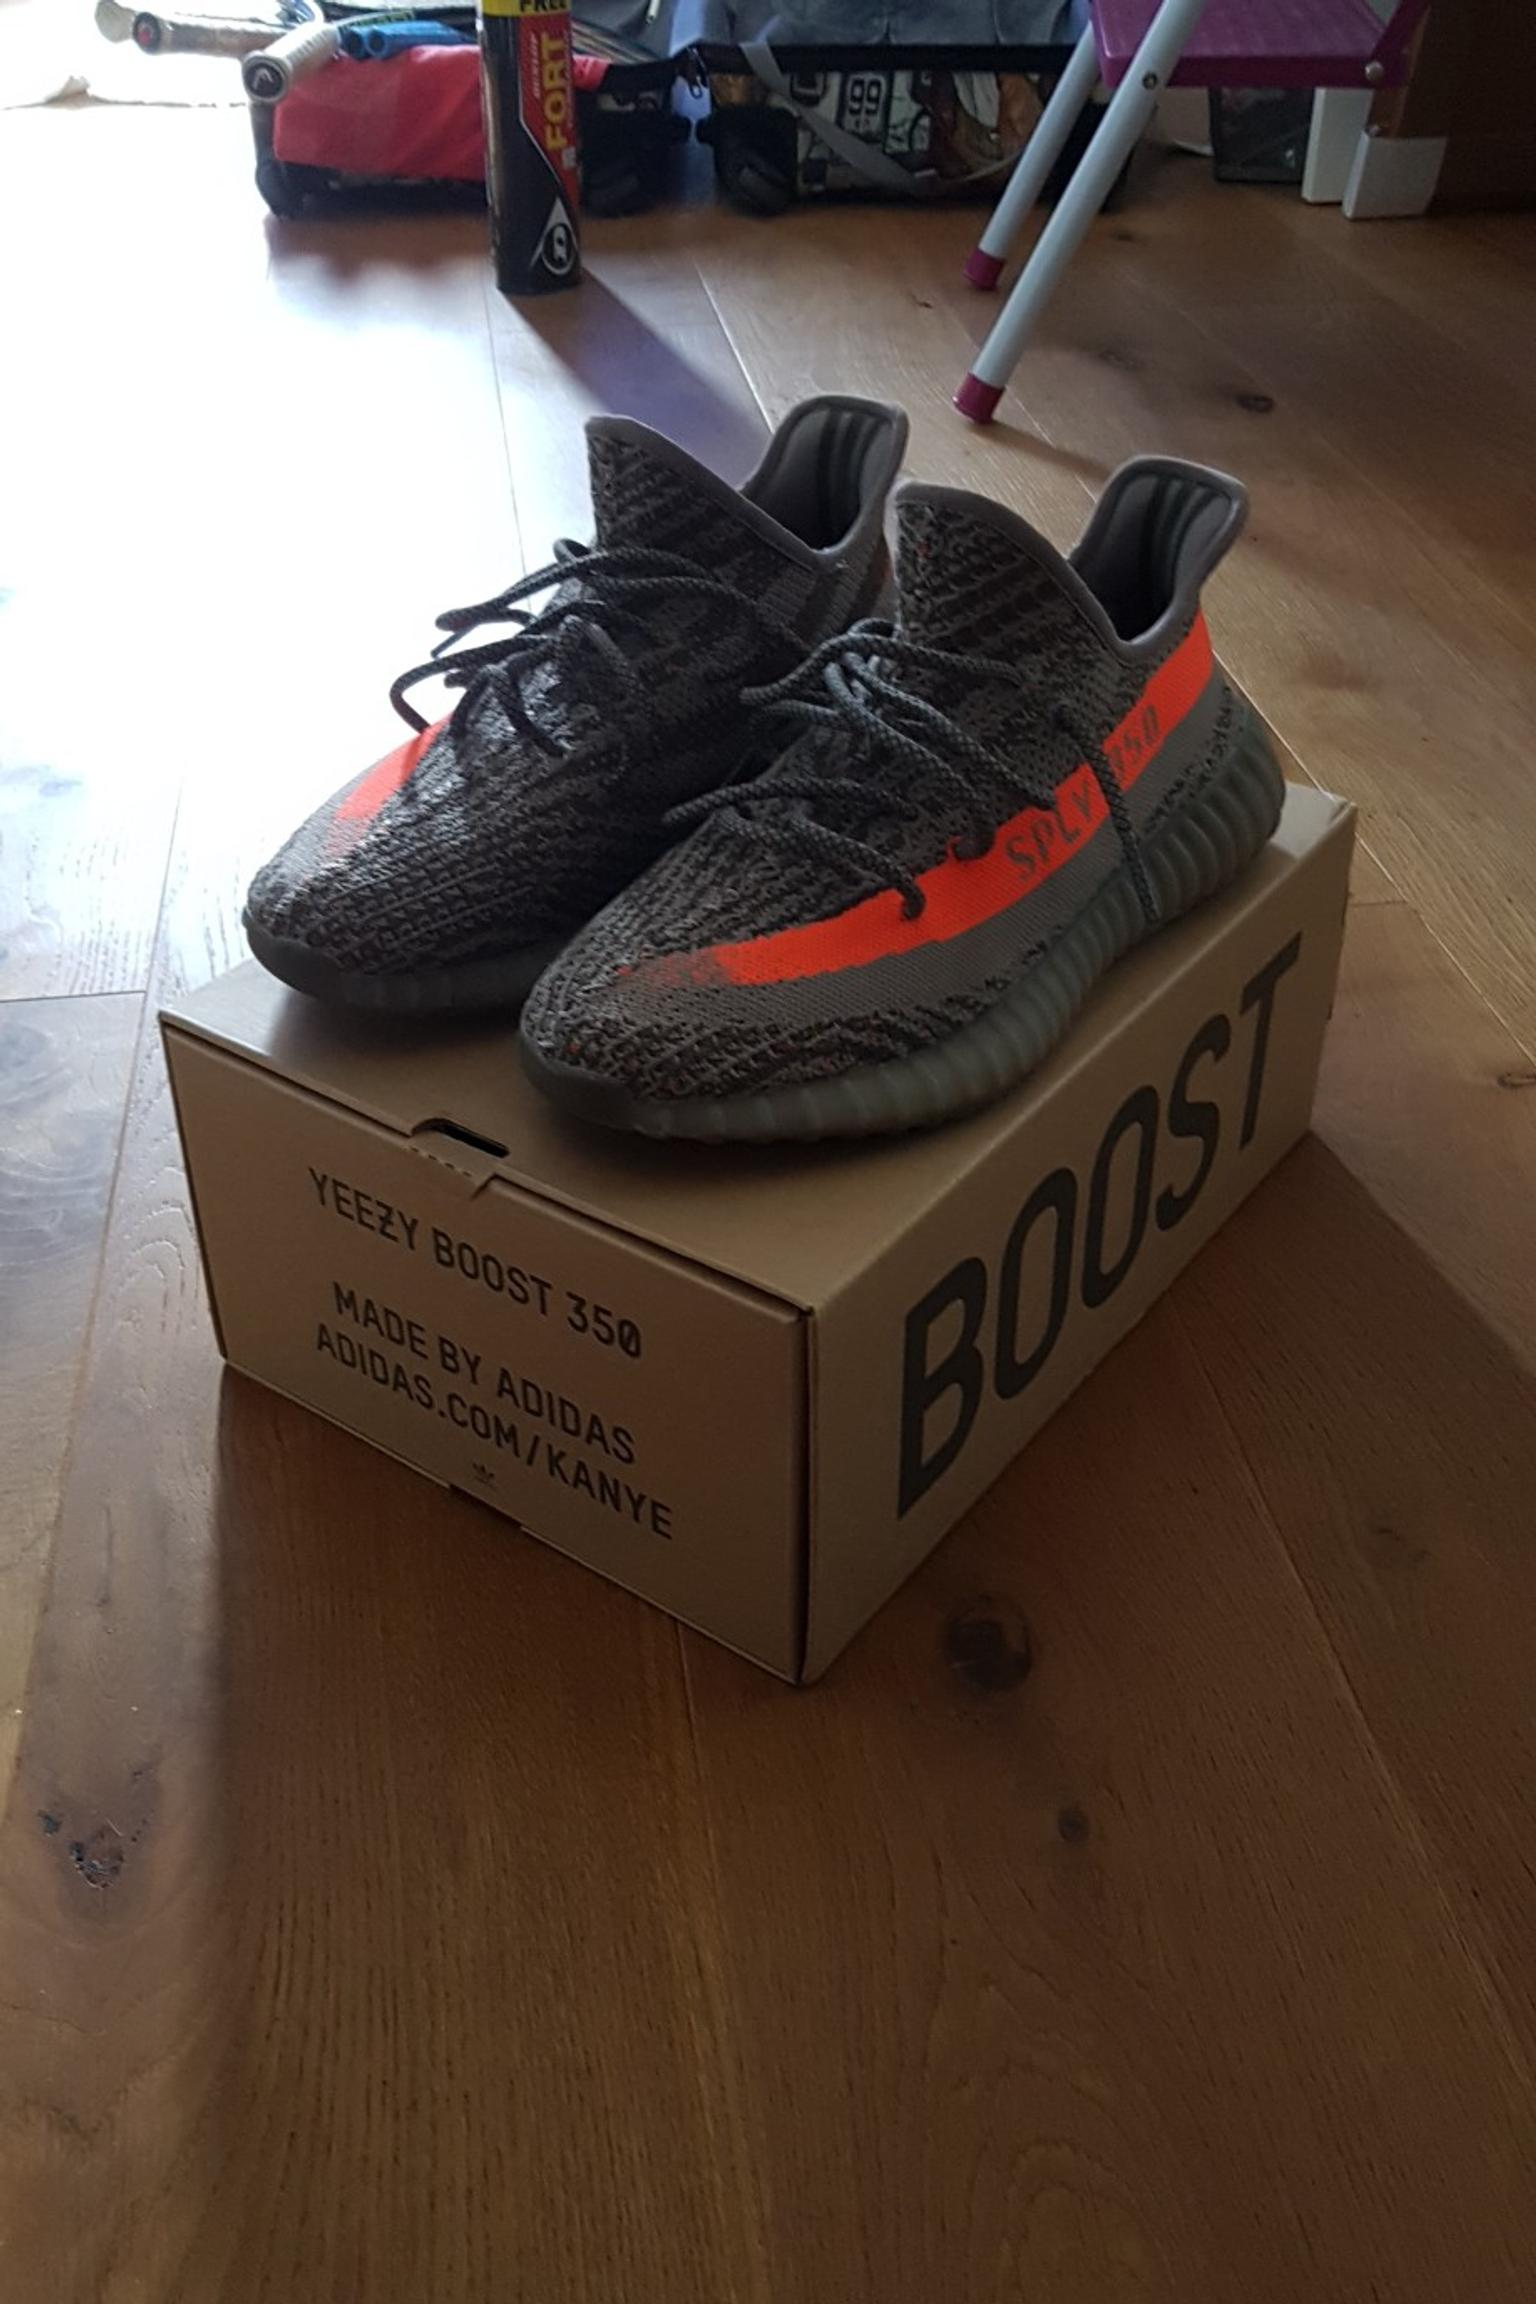 Adidas Yeezy Boost 350 V2 Beluga 1.0 in 86179 Augsburg for